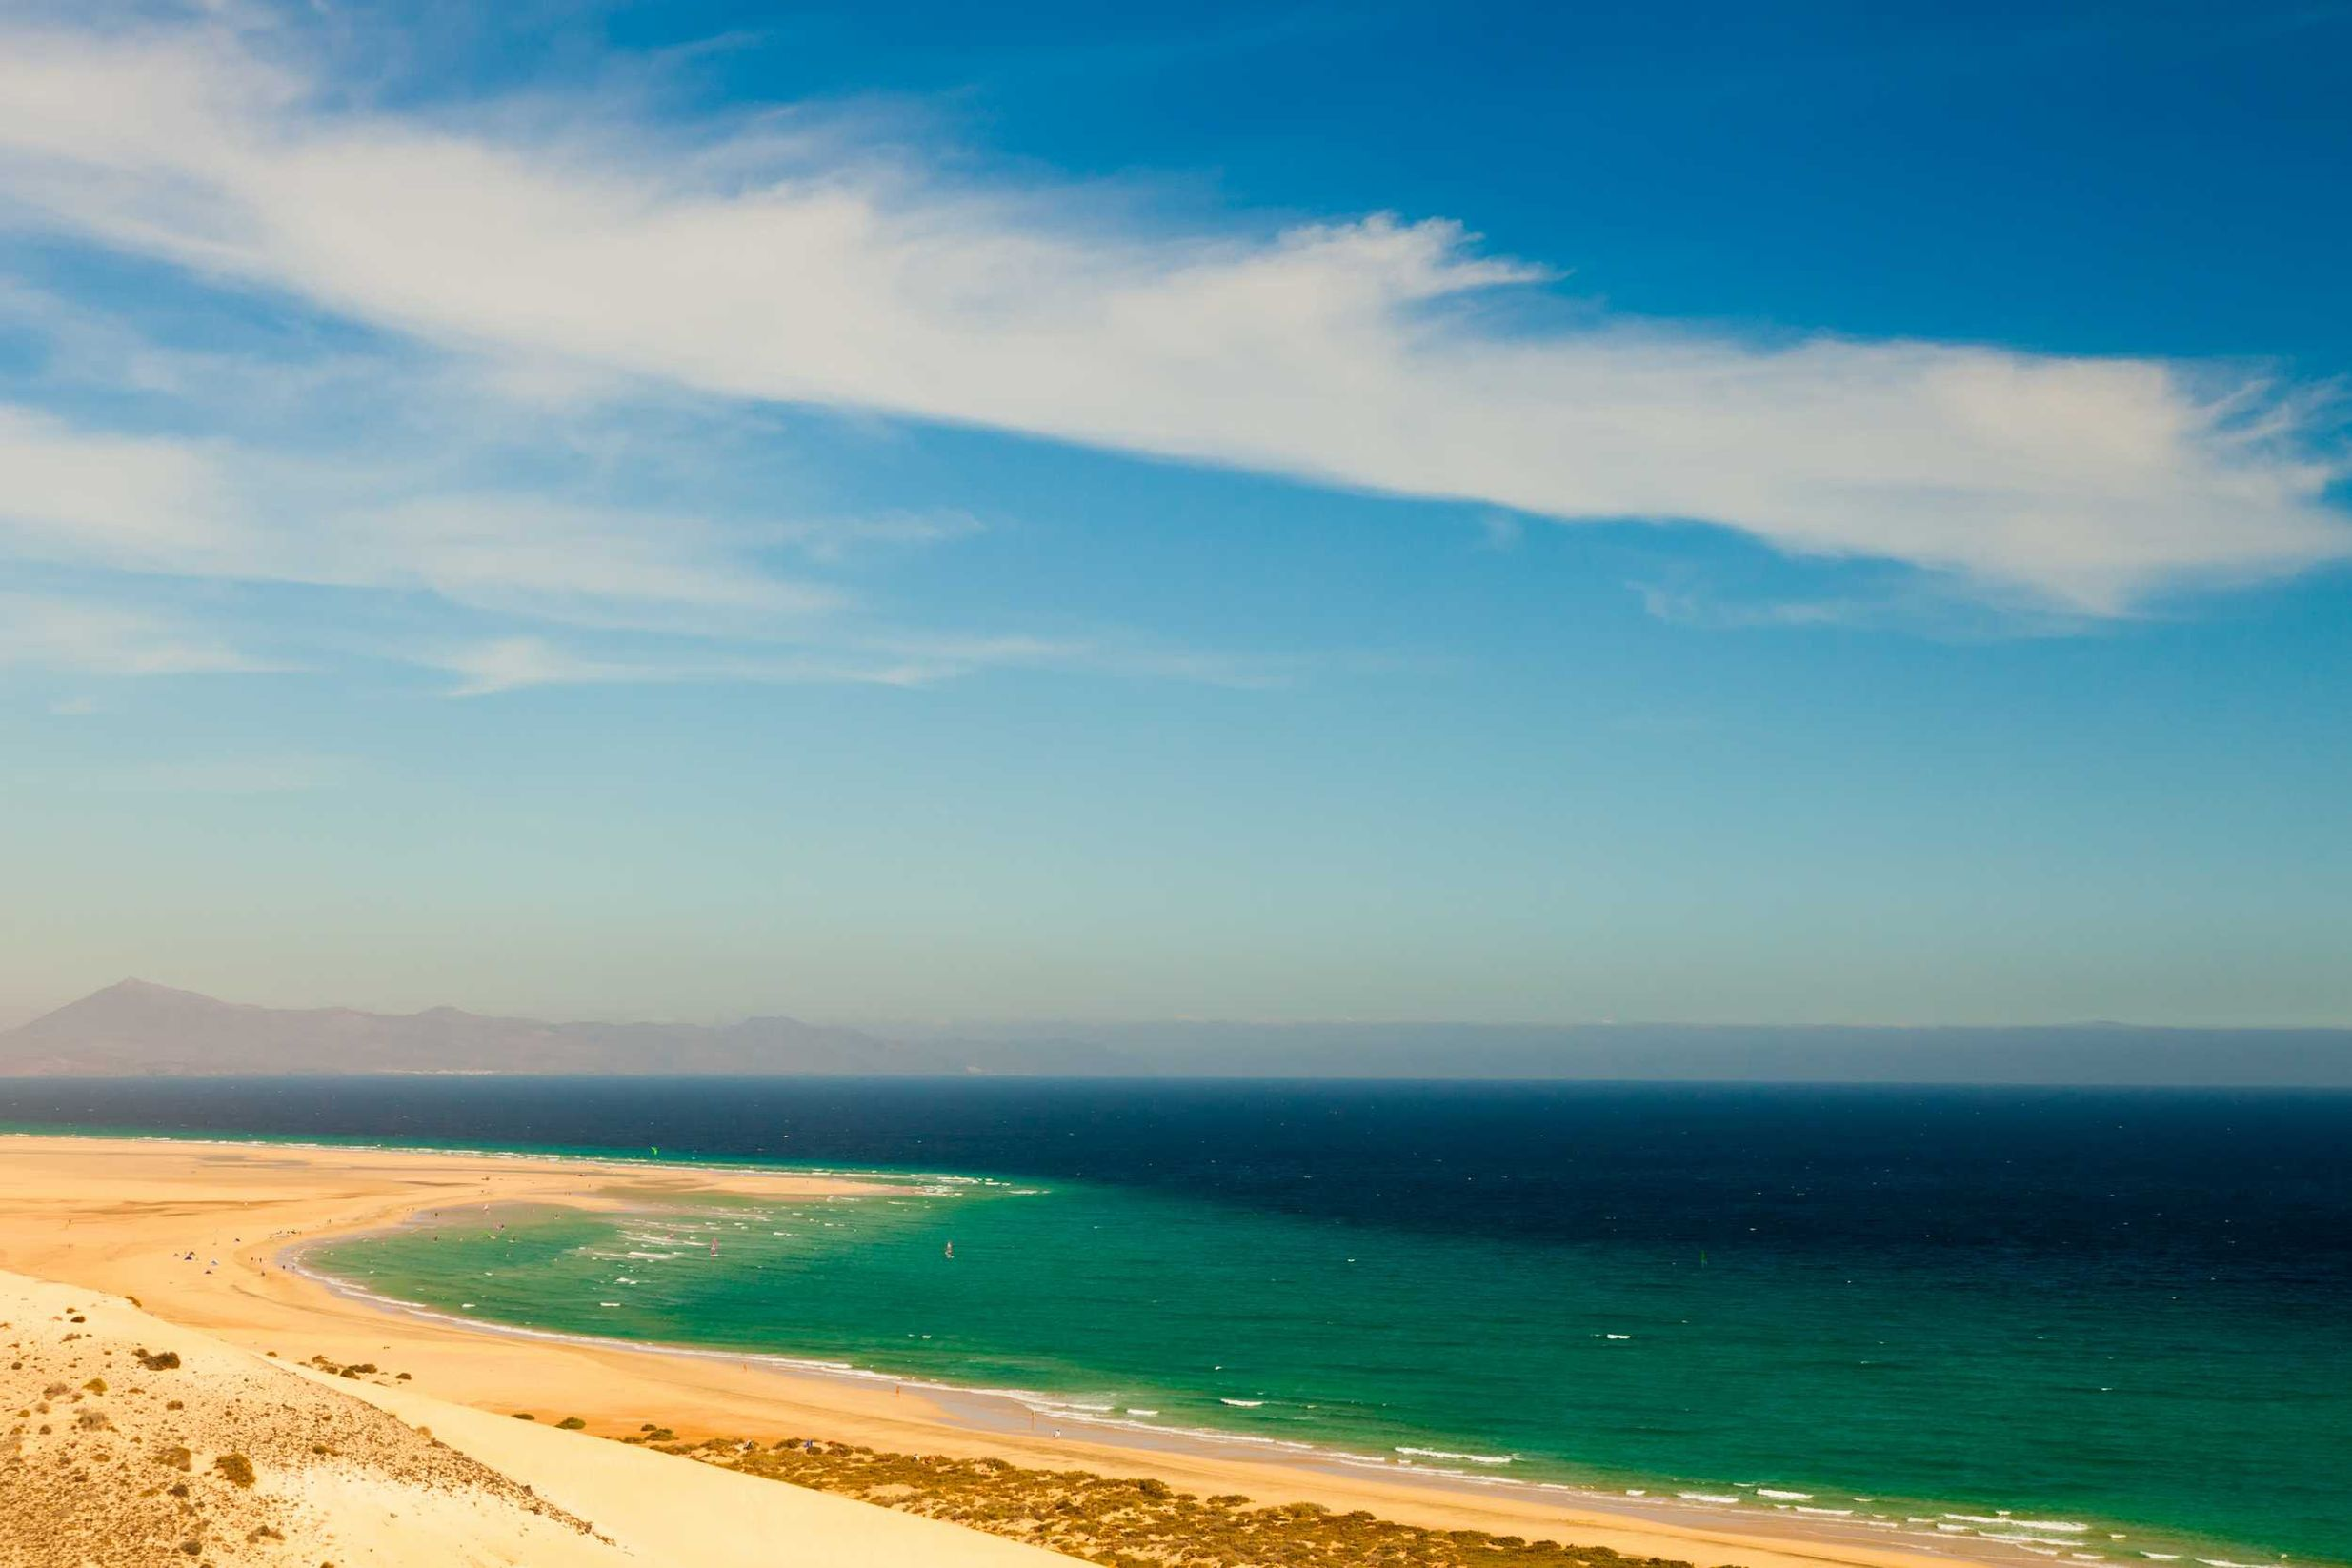 Yellow stretch of sand in Fuerteventura - the beaches are some of the best in Europe